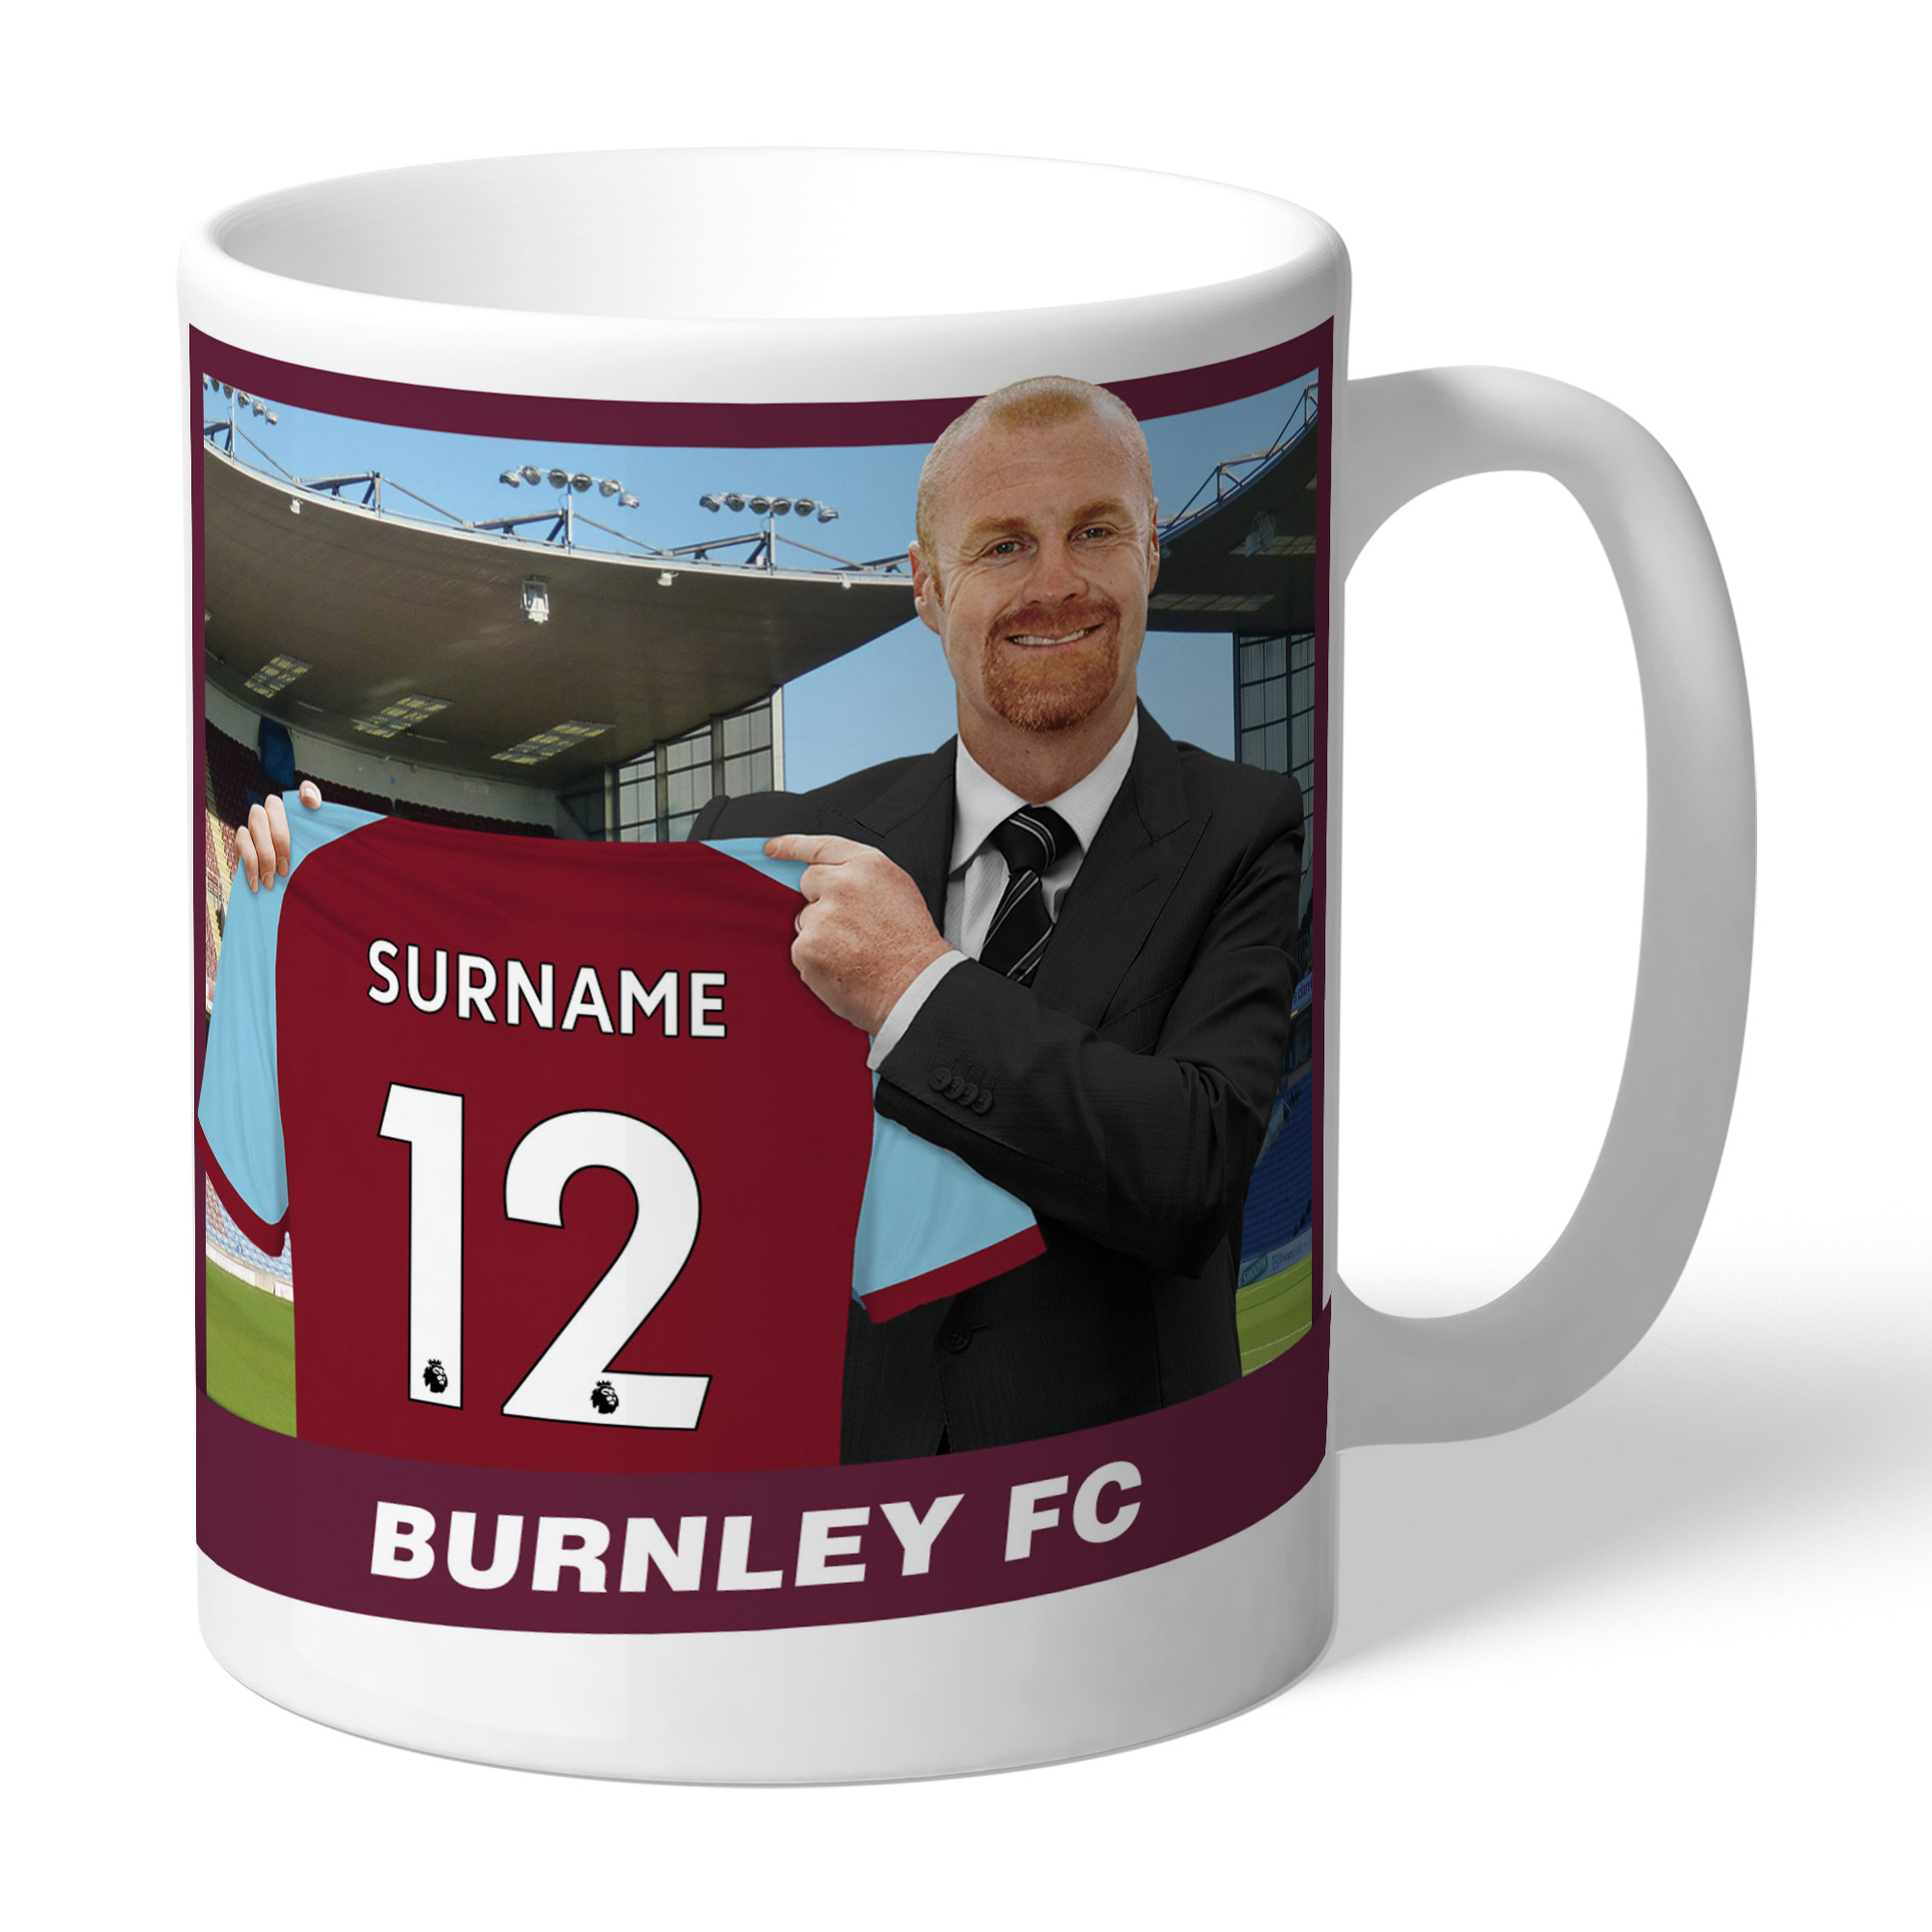 Burnley FC Manager Mug